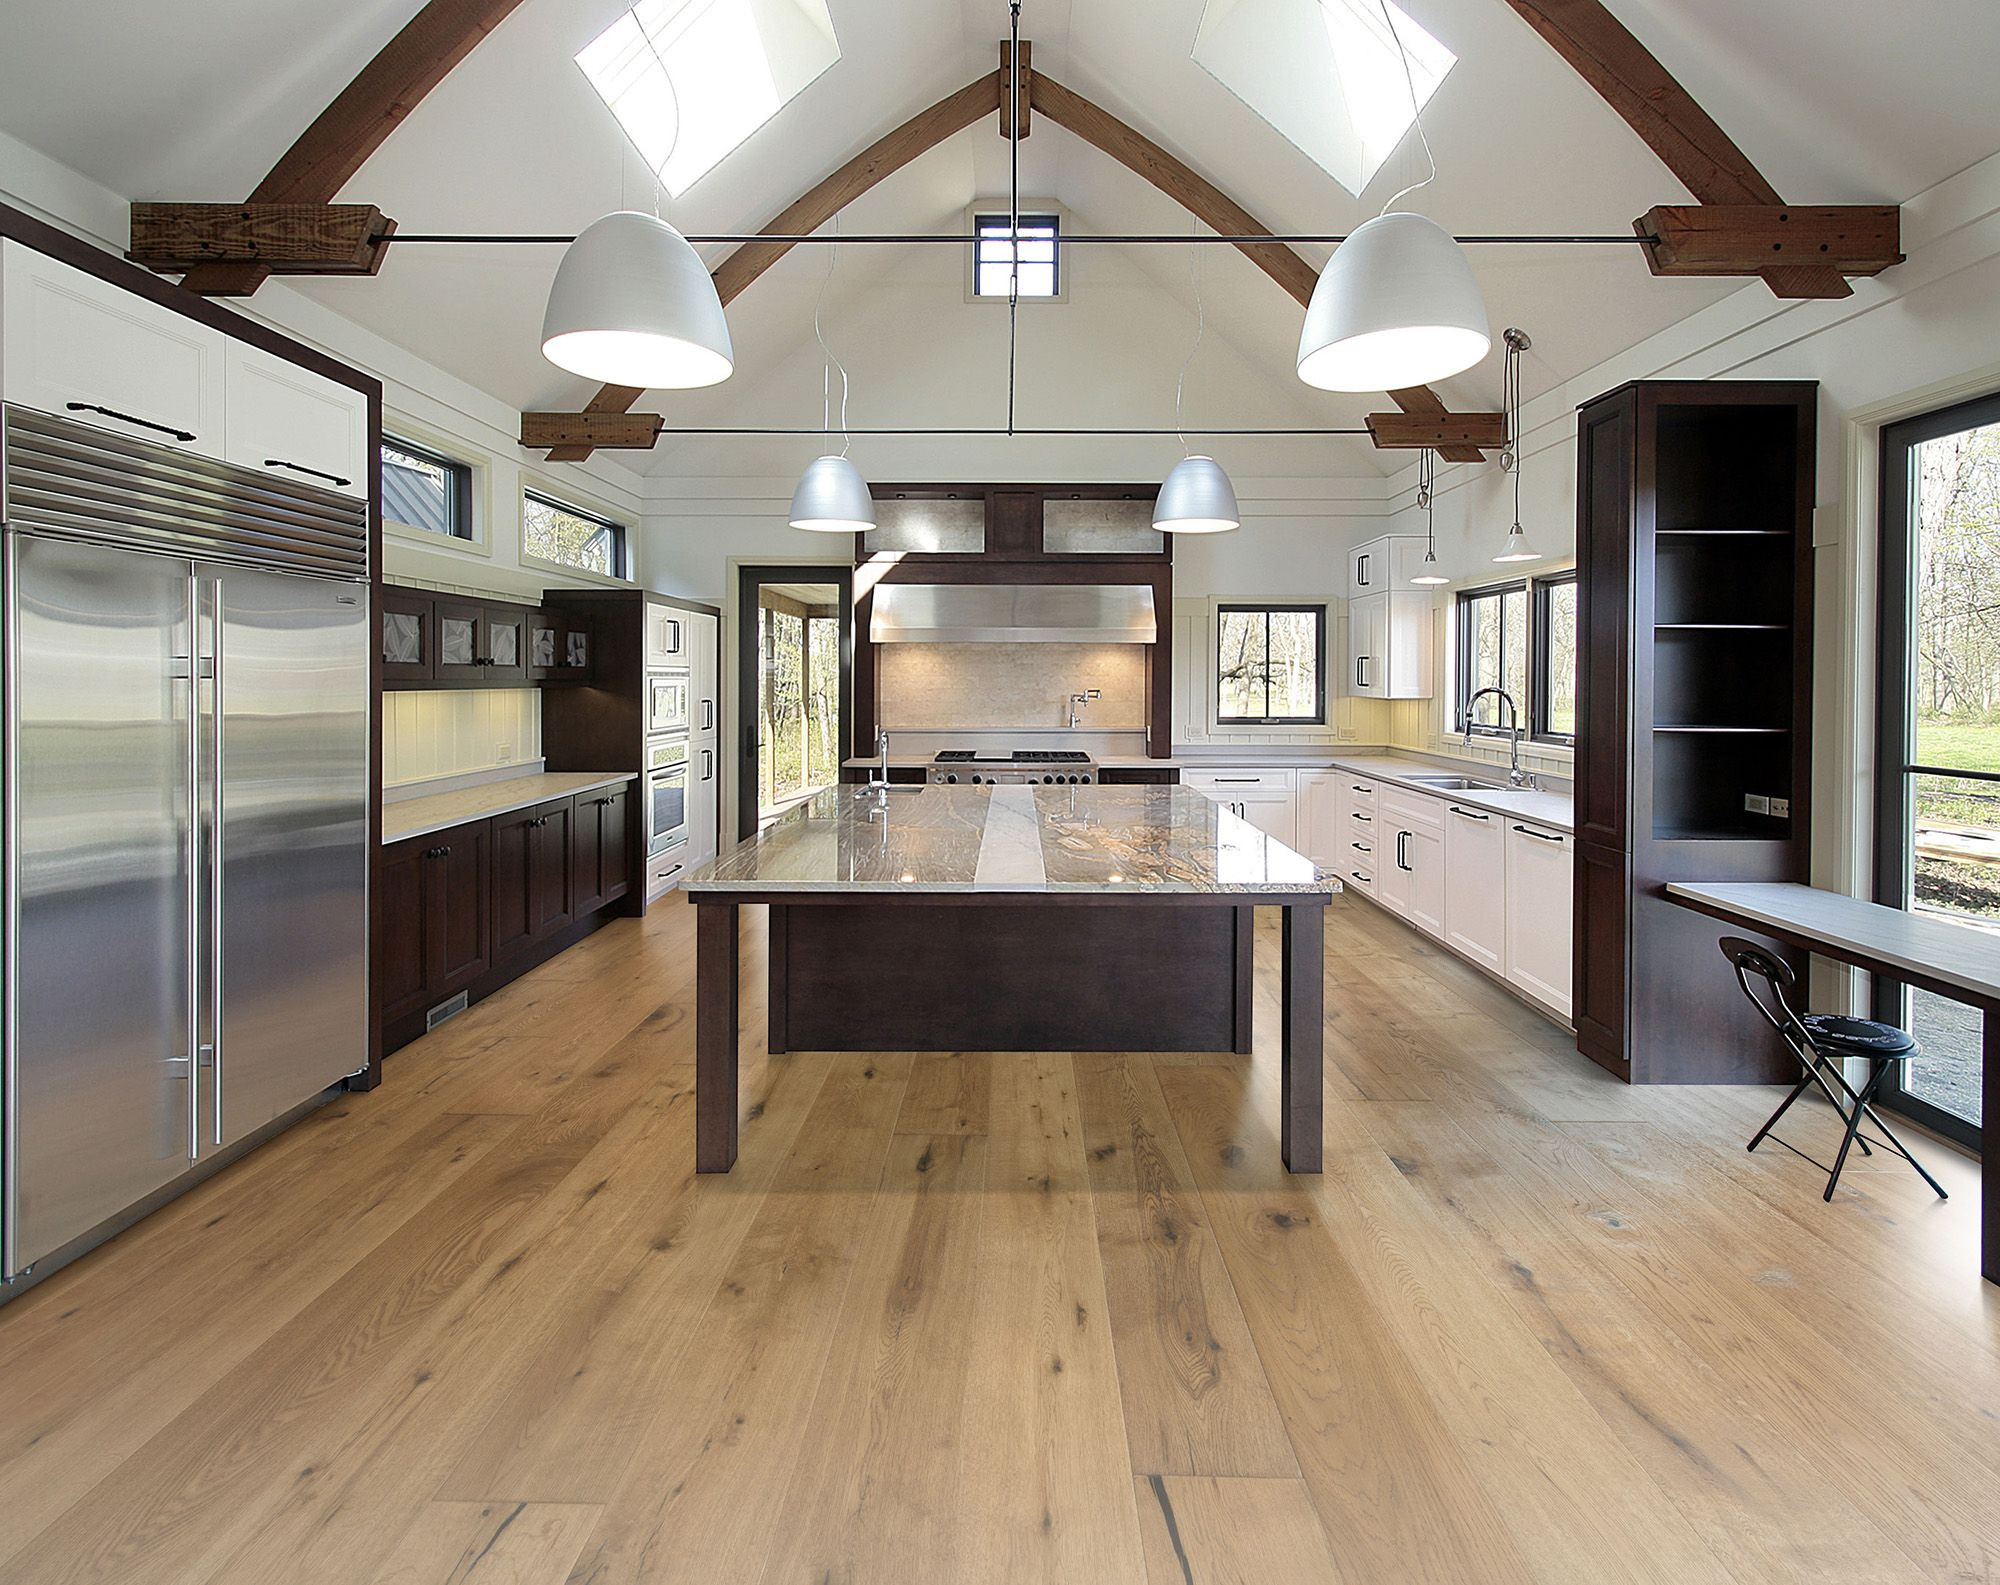 owens hardwood flooring distributors of builddirecta heritage collection engineered hardwood european within builddirecta heritage collection engineered hardwood european white oak acoustic